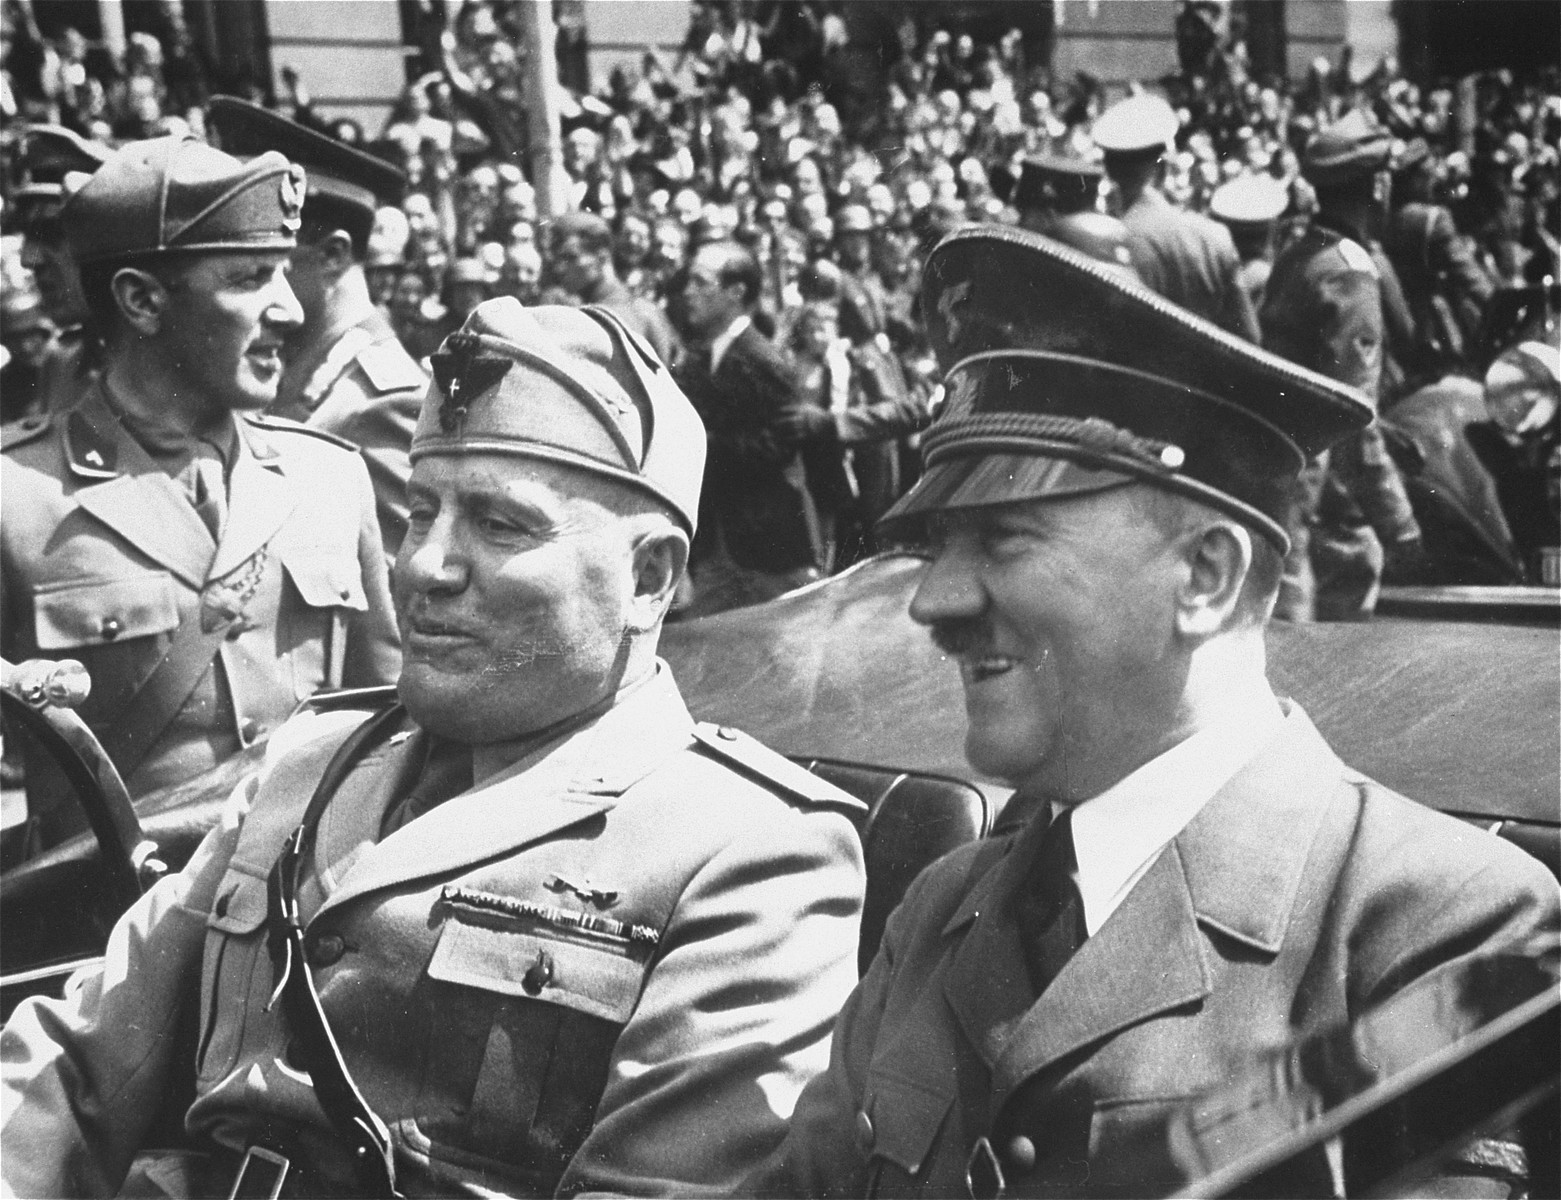 Adolf Hitler and Benito Mussolini ride in an open automobile through the streets of Munich during the Italian dictator's visit to Germany.